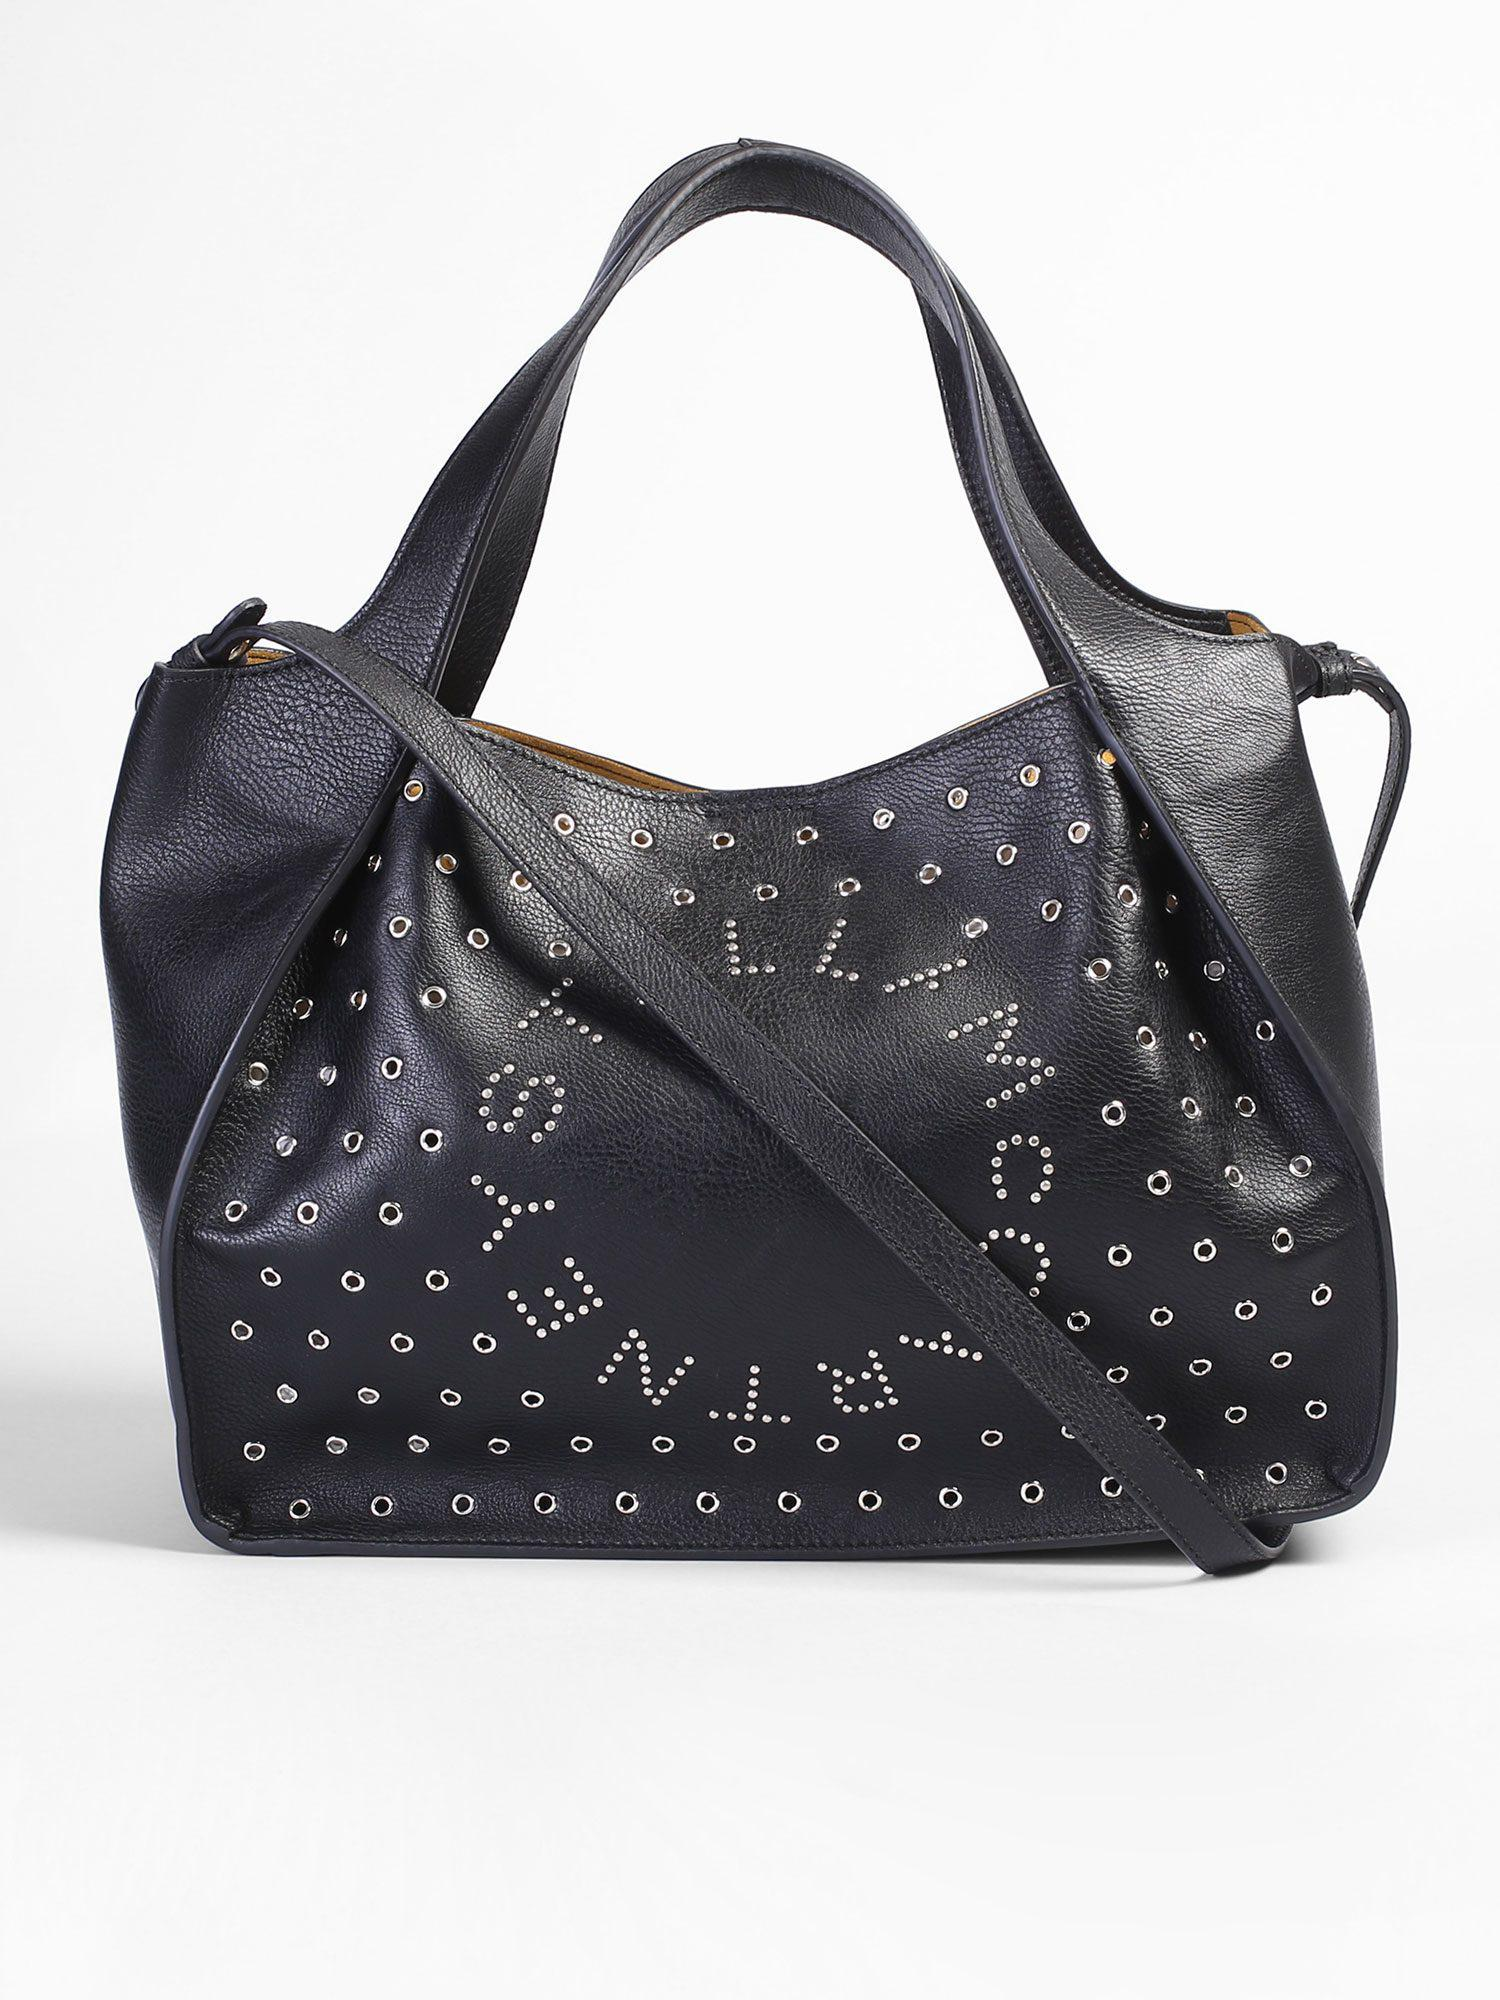 5f05a1073808 Lyst - Stella Mccartney Studded Faux Leather Tote Bag in Black